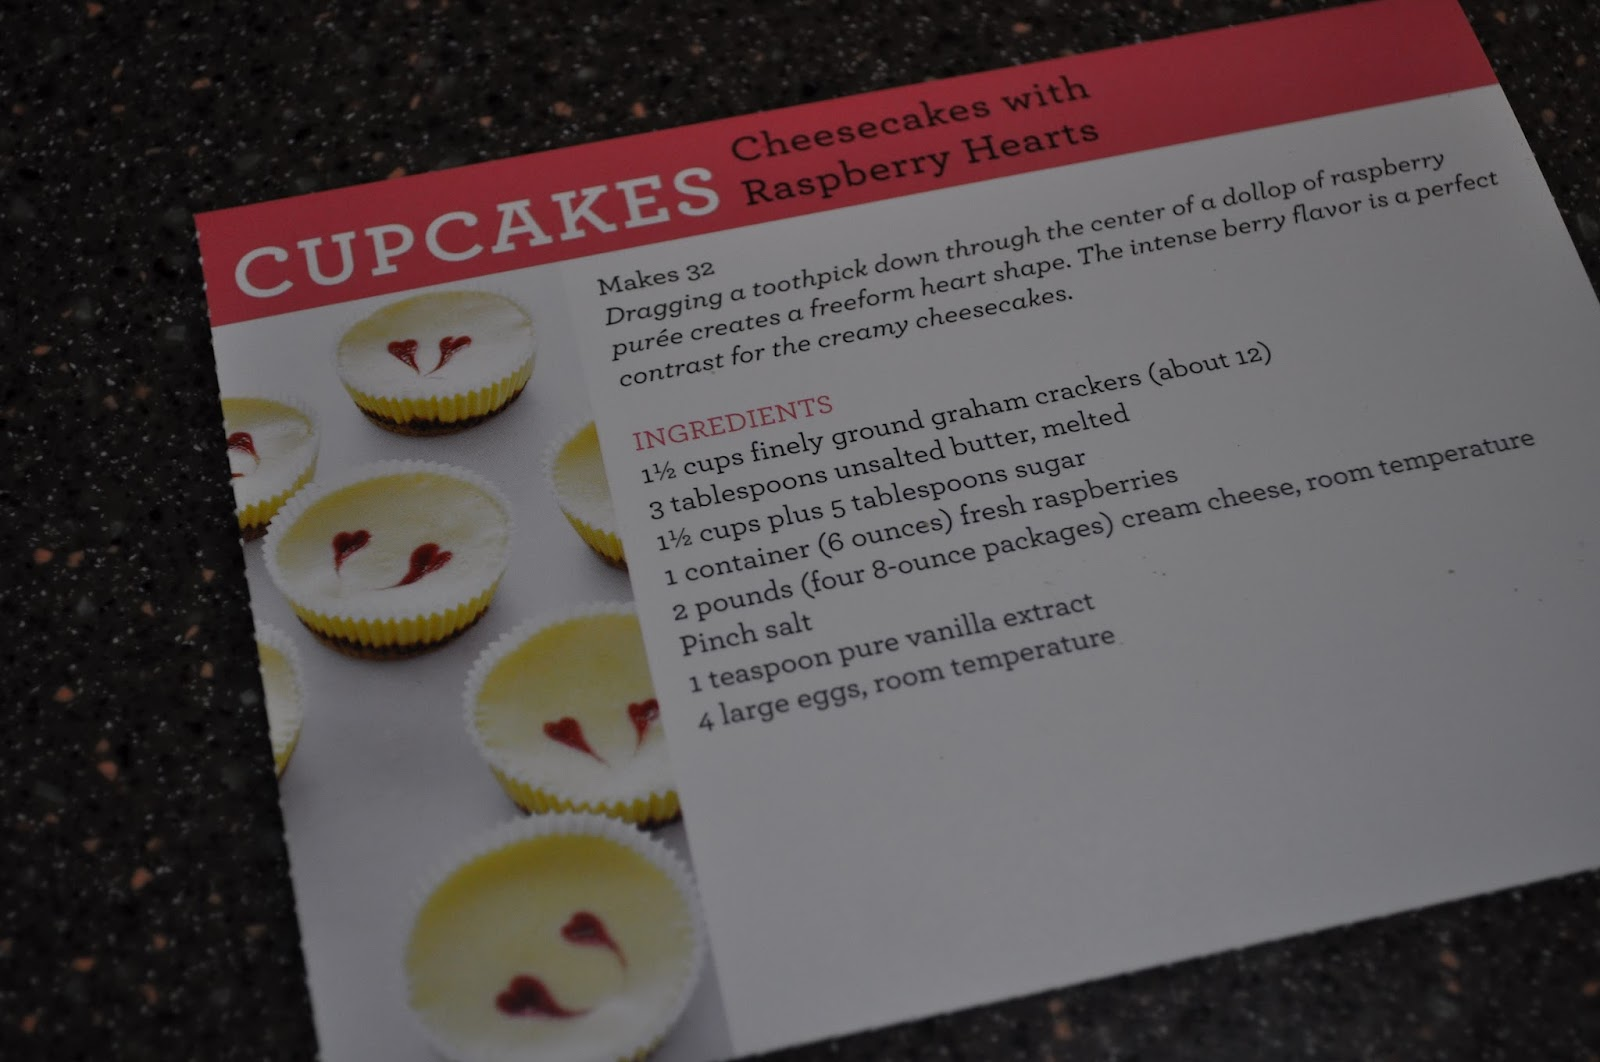 ... Cheesecakes with Raspberry Hearts (Cupcake of the Month Series #2